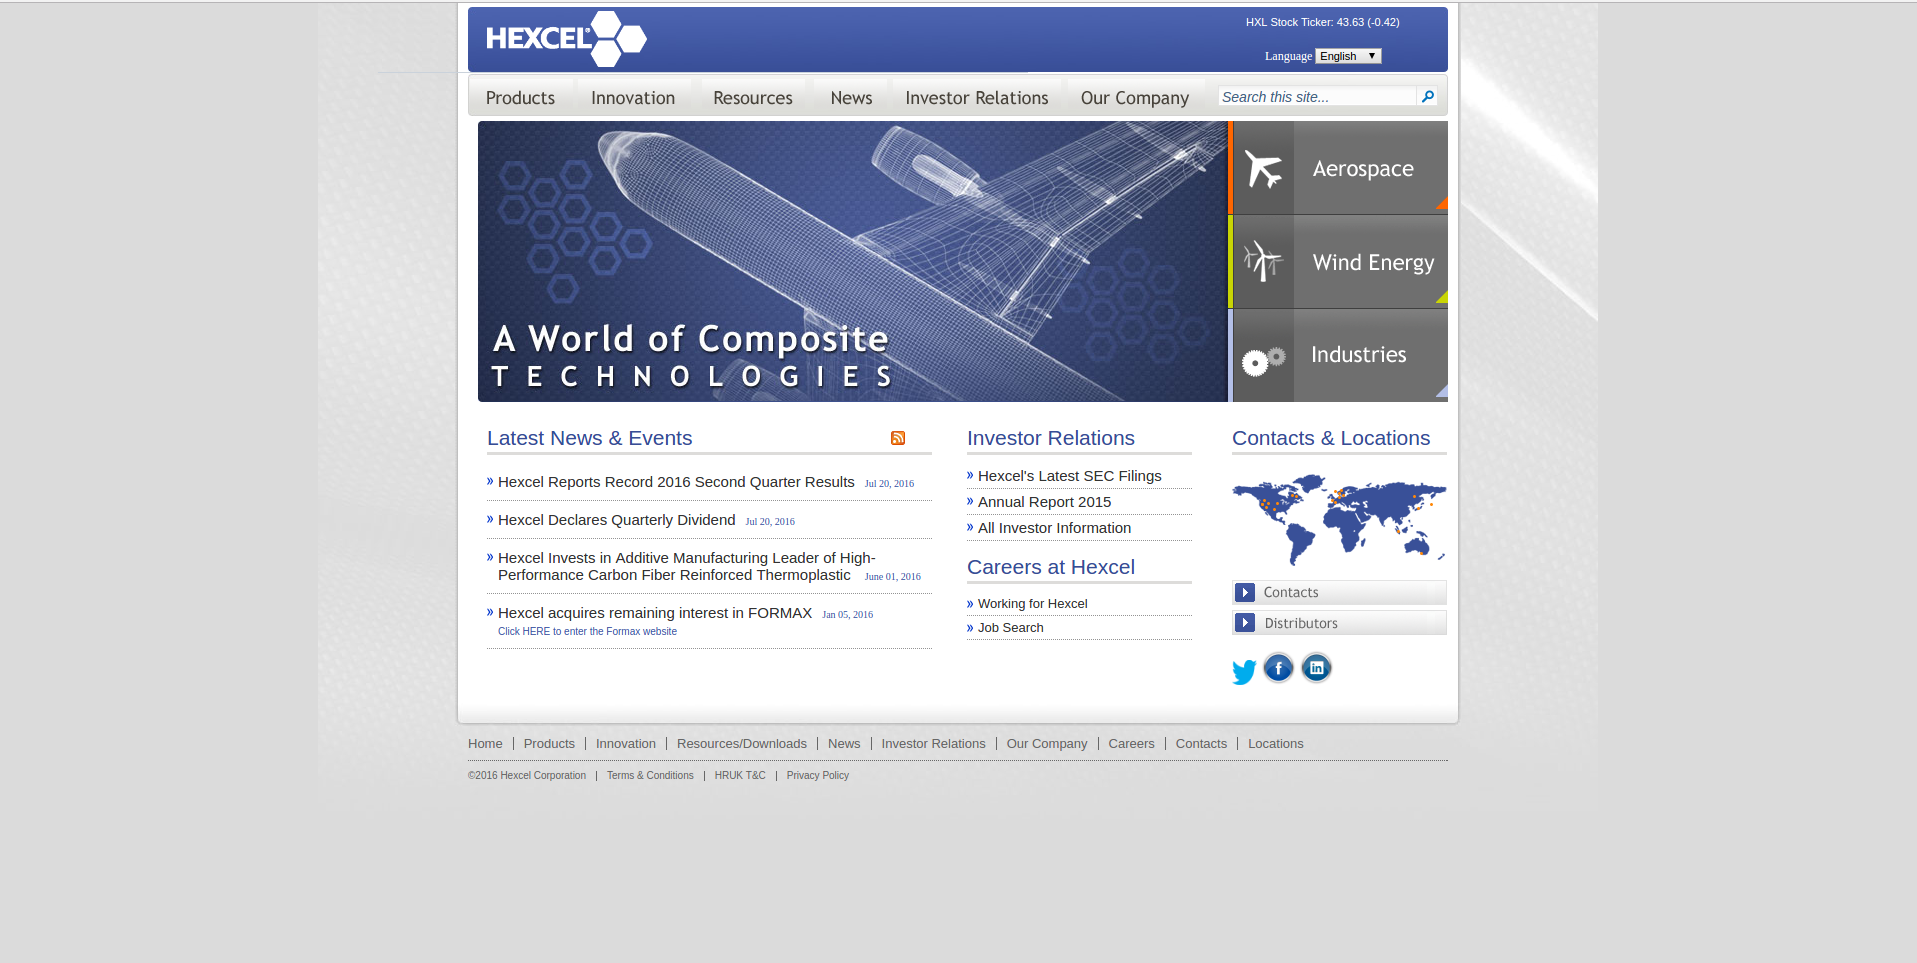 Hexcel Company Profile Office Locations Competitors Revenue Ingenicomm Inc Engineering Services Financials Employees Key People Subsidiaries News